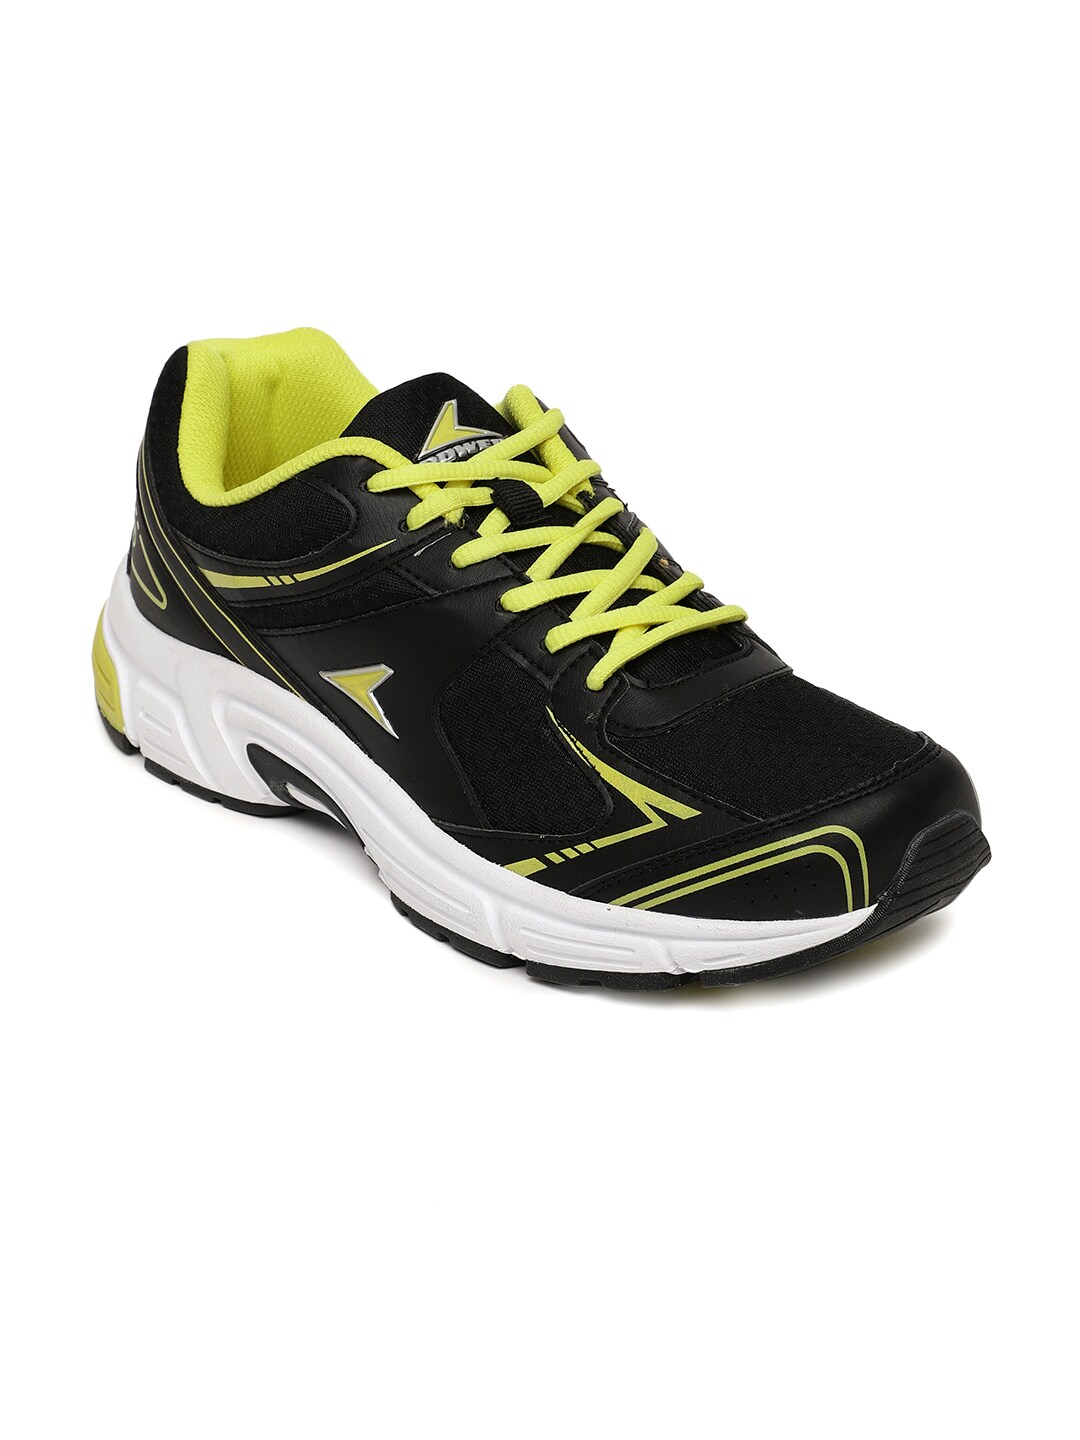 8b9a96f7ed3 Non Marking Shoes Sports Shoes - Buy Non Marking Shoes Sports Shoes online  in India